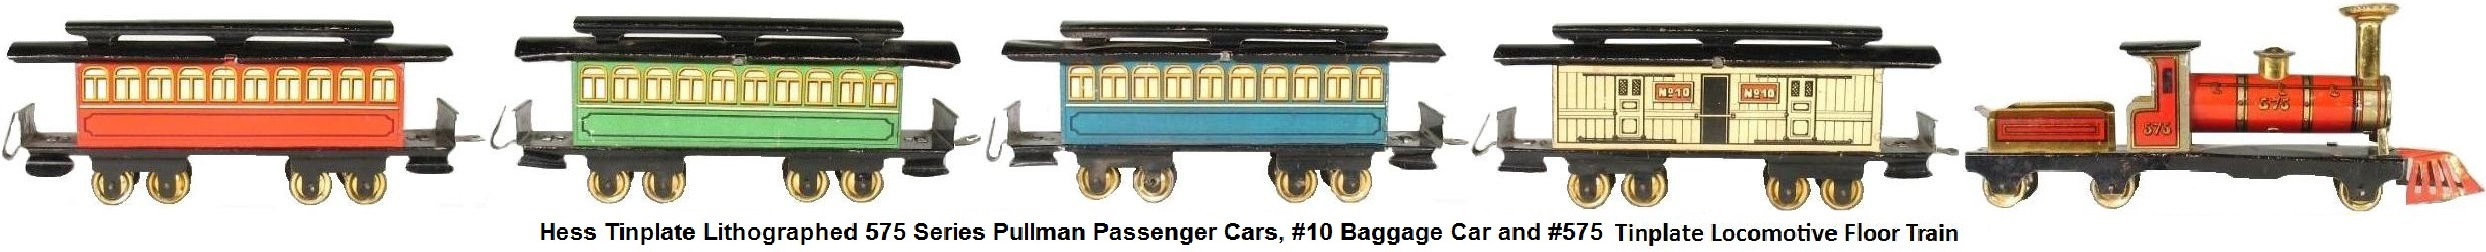 Hess 575 series Tinplate Lithographed Pullman Passenger cars, #10 Baggage Car and One Piece #575 Tinplate Locomotive and Tender Floor Train